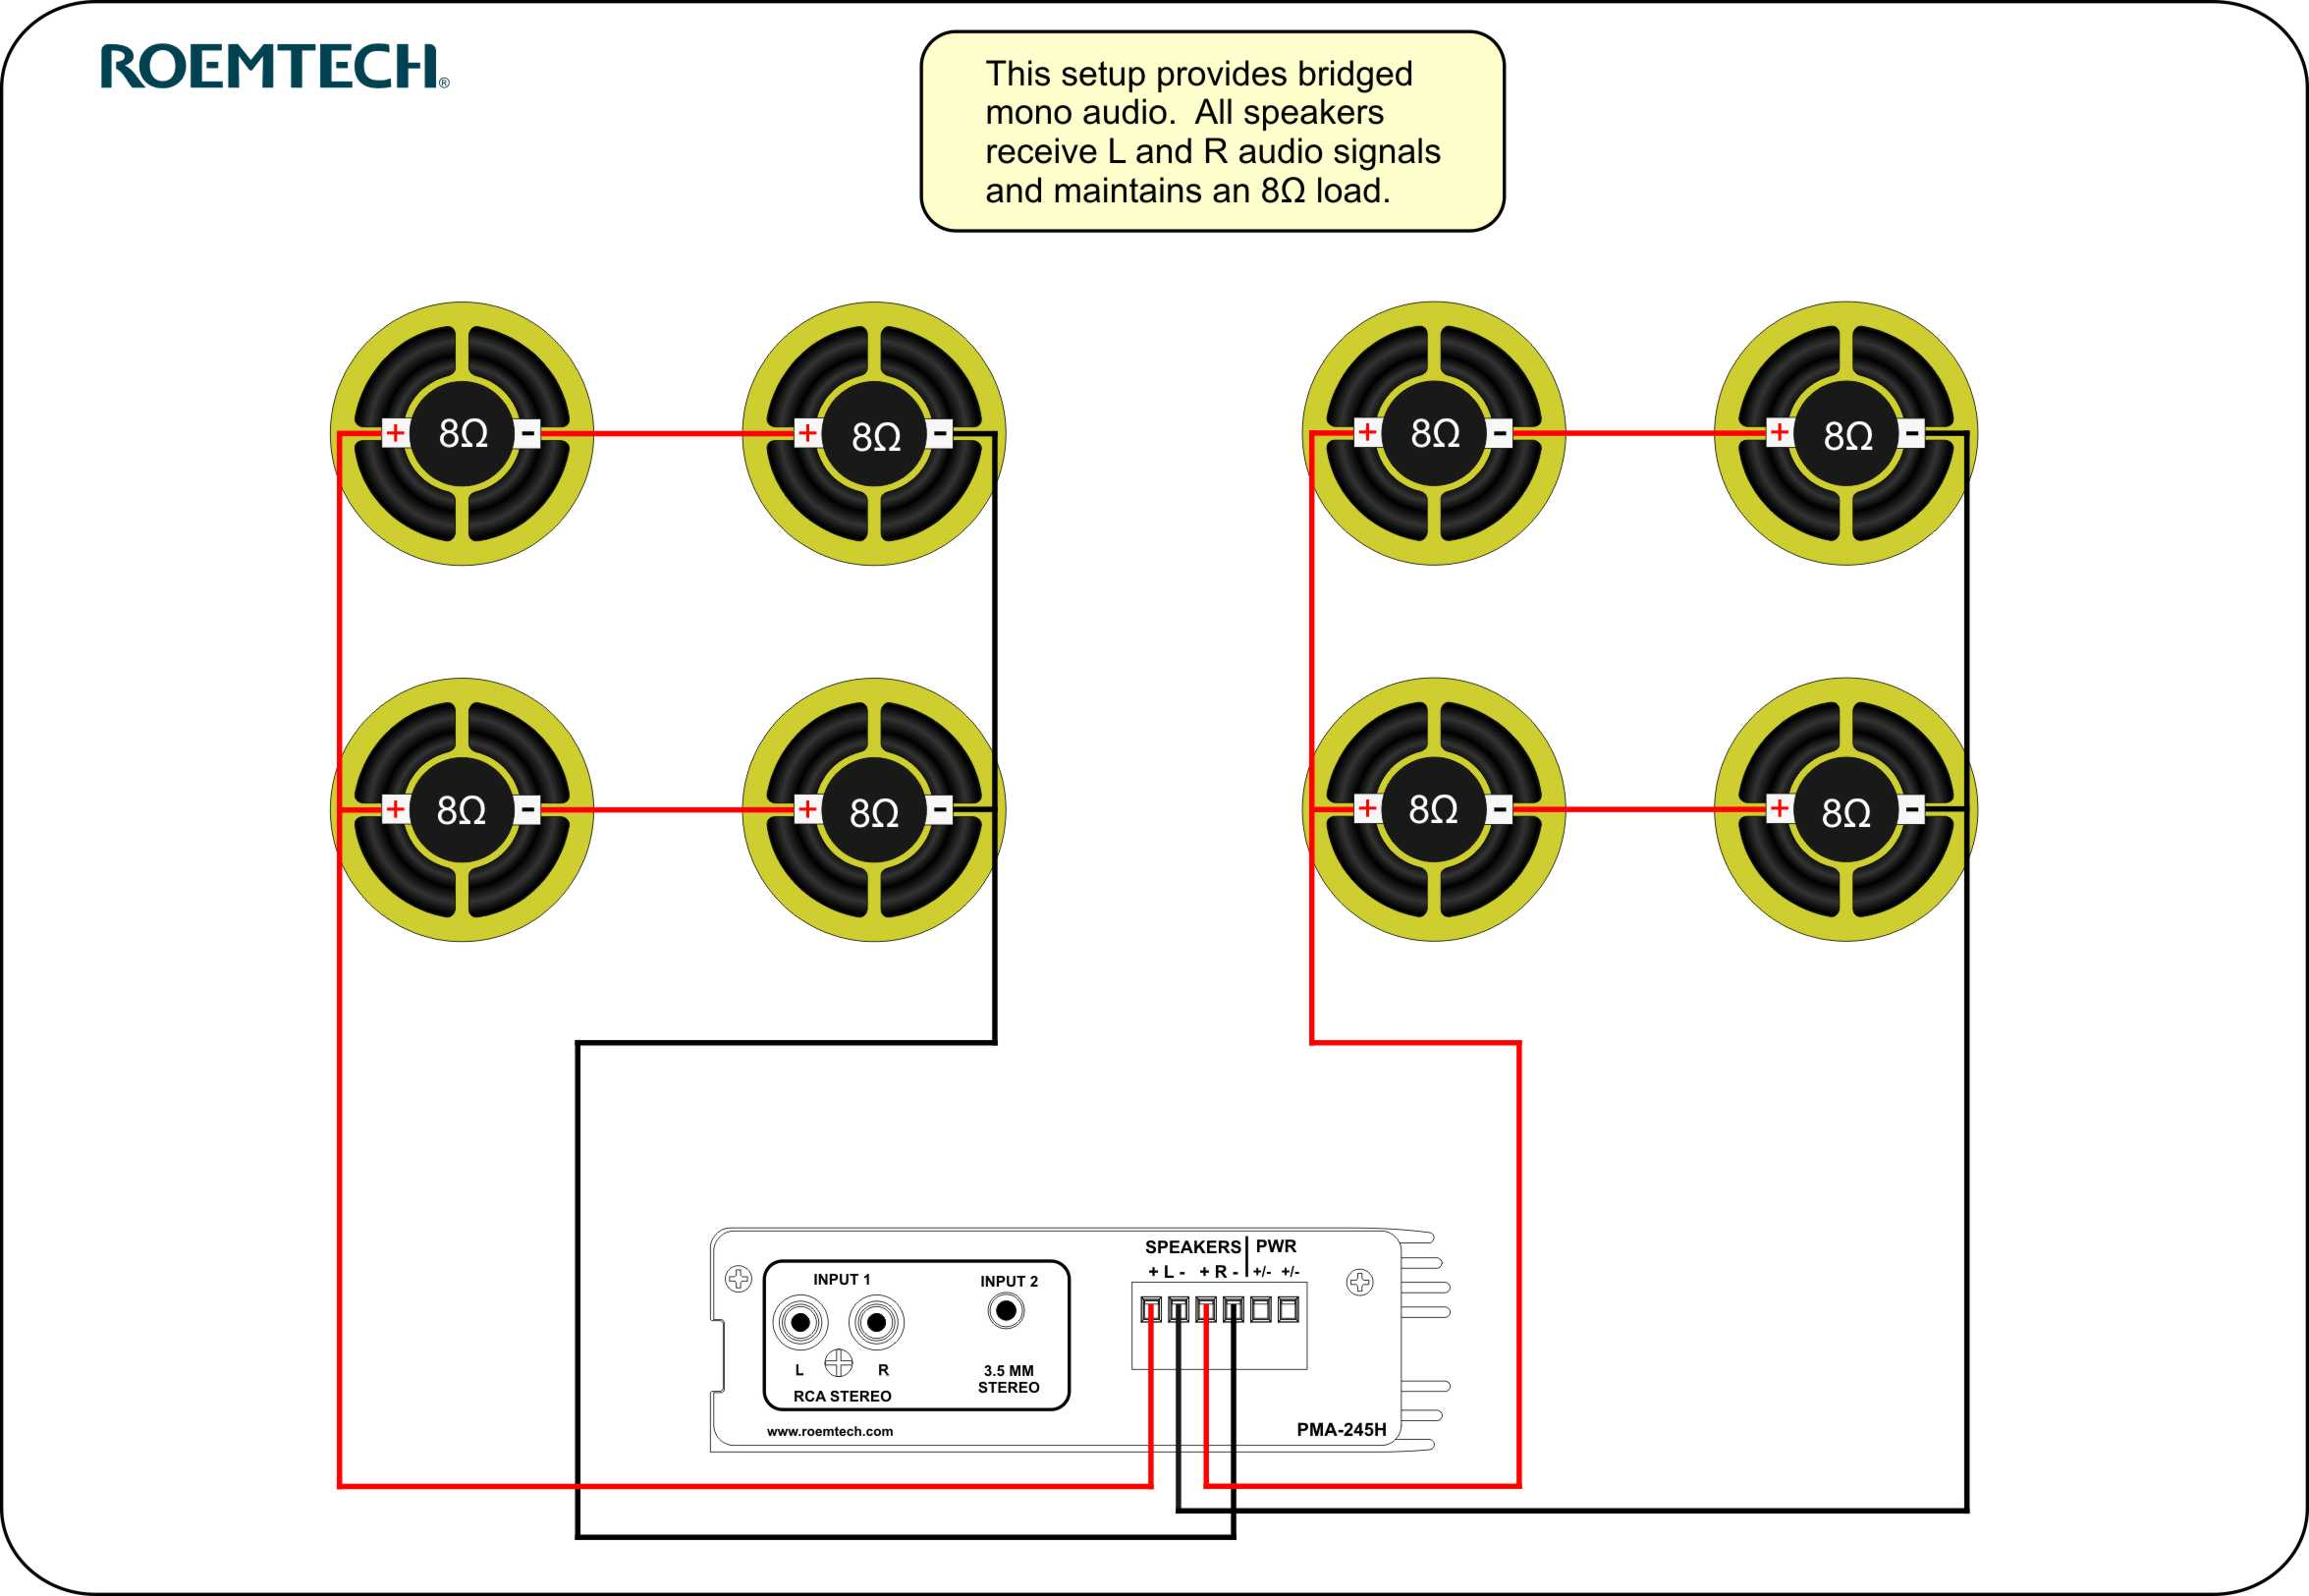 classroom_audio_multiple_speaker classroom audio systems multiple speaker wiring diagram speaker wiring diagram at gsmx.co